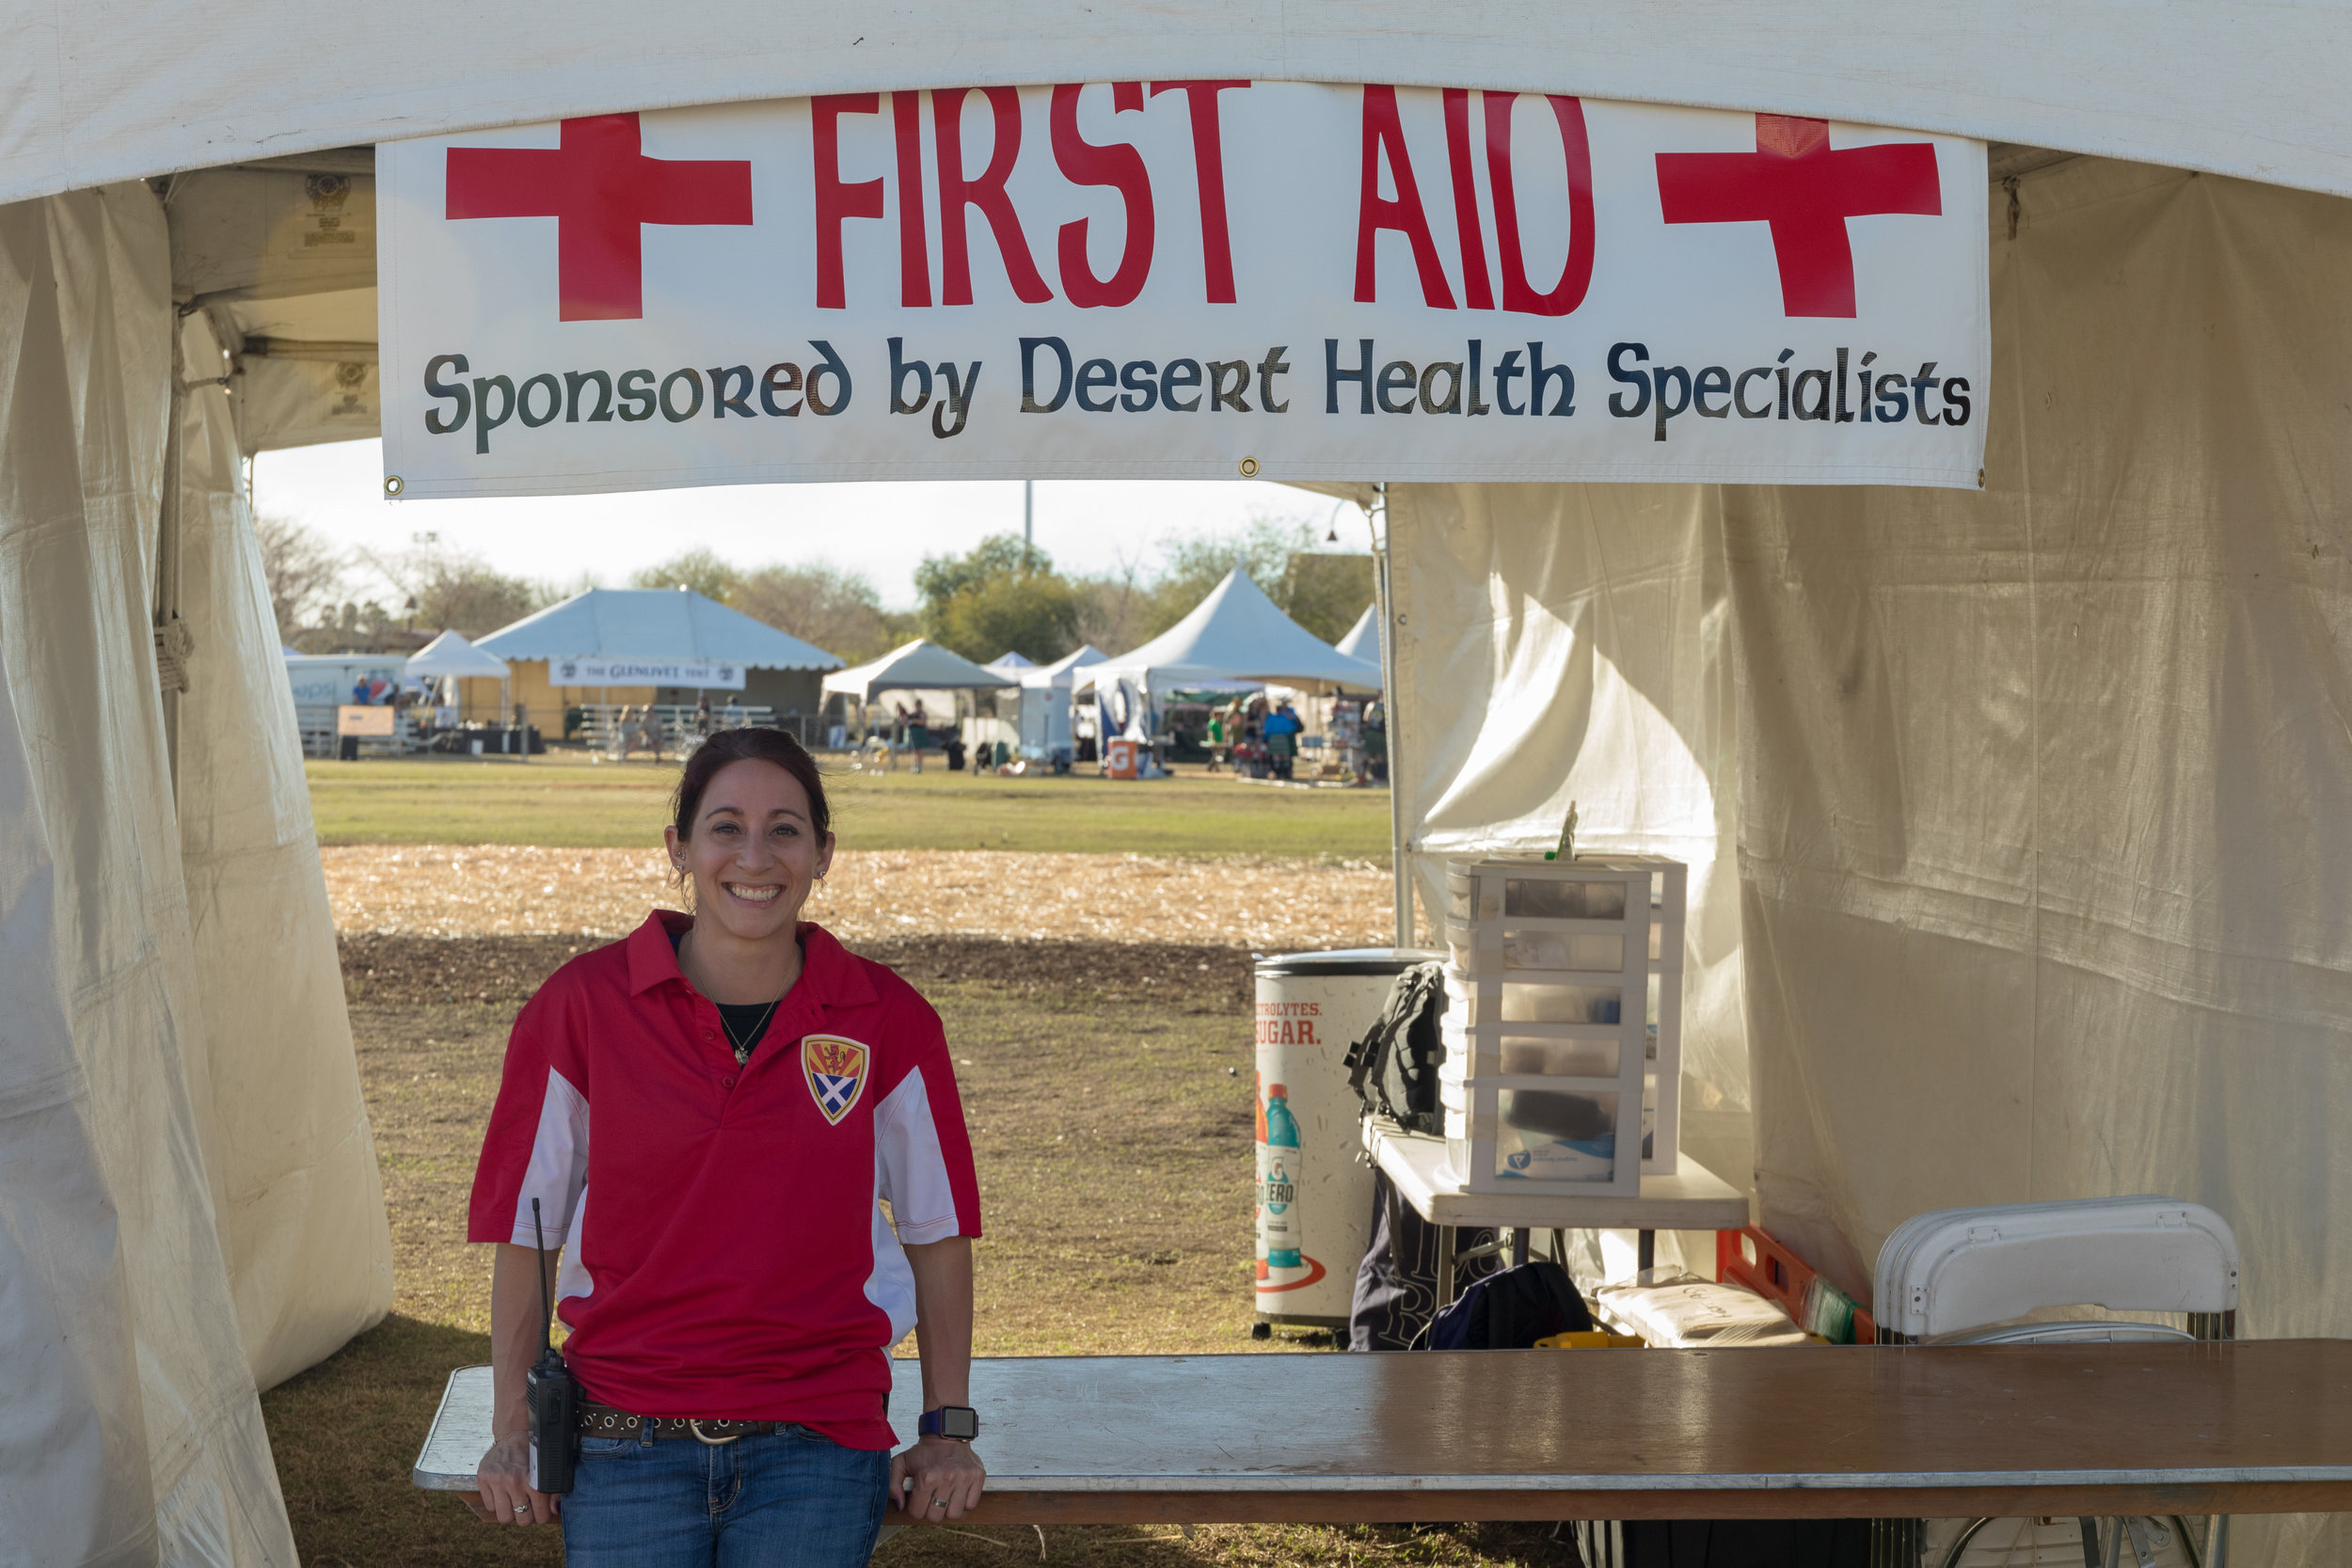 Desert Health Specialists volunteering at the 2019 Highland Games